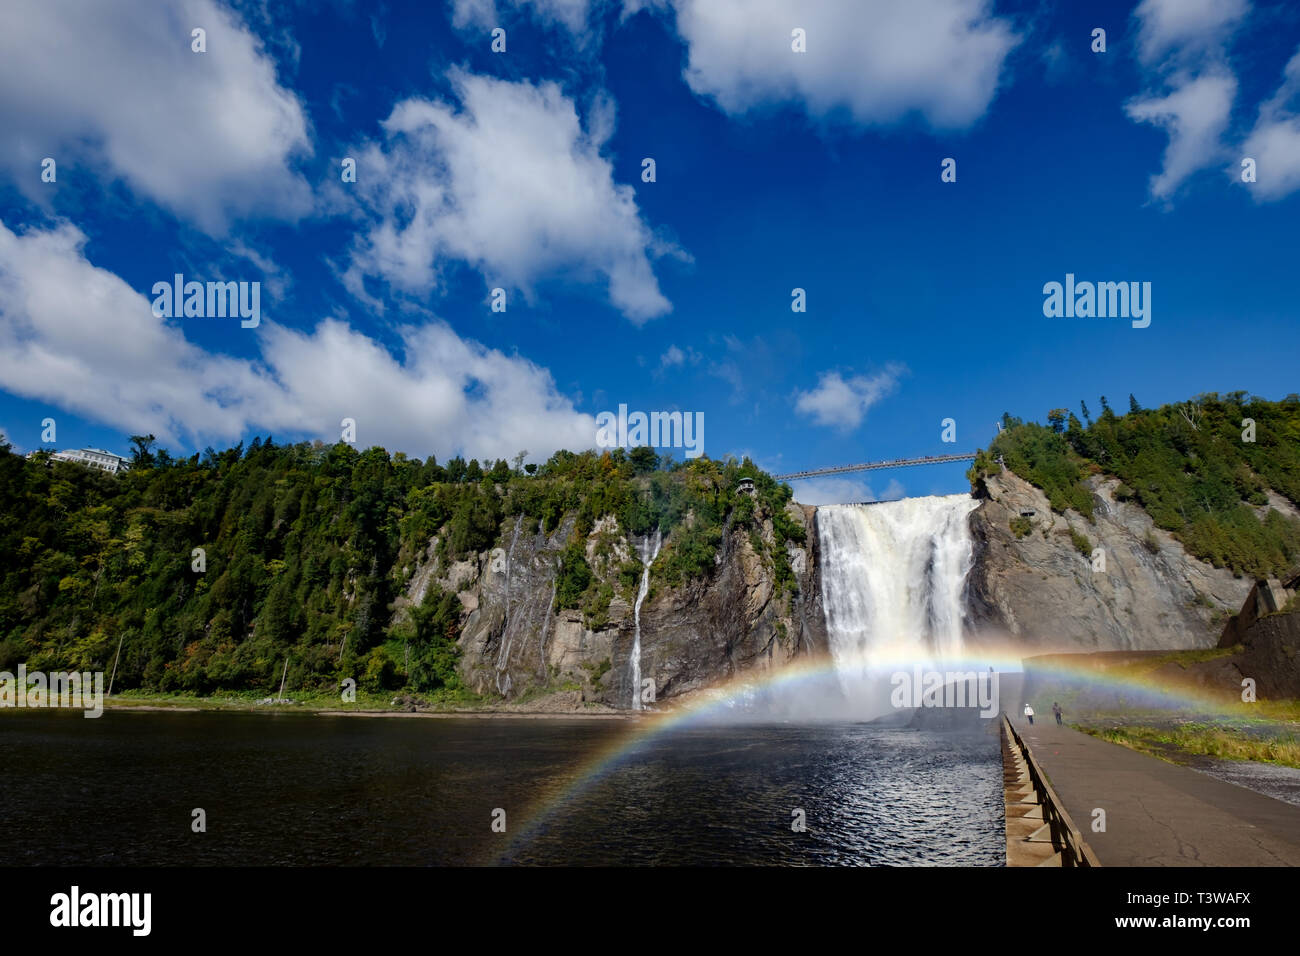 Montmorency Falls rainbow, wide angle, Quebec, Canada. Stock Photo